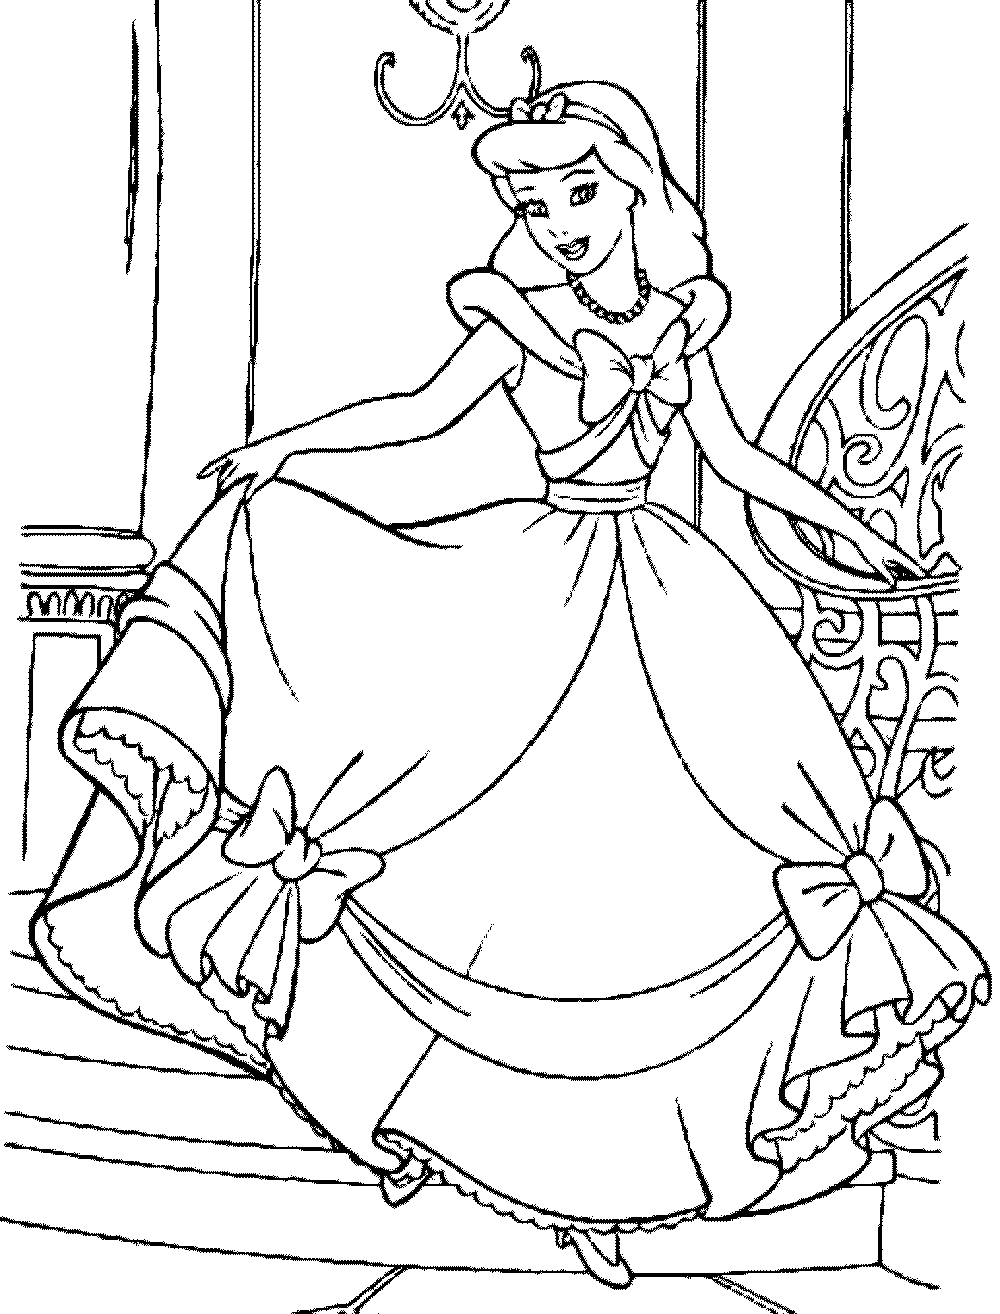 coloring cinderella pictures print download impressive cinderella coloring pages coloring pictures cinderella